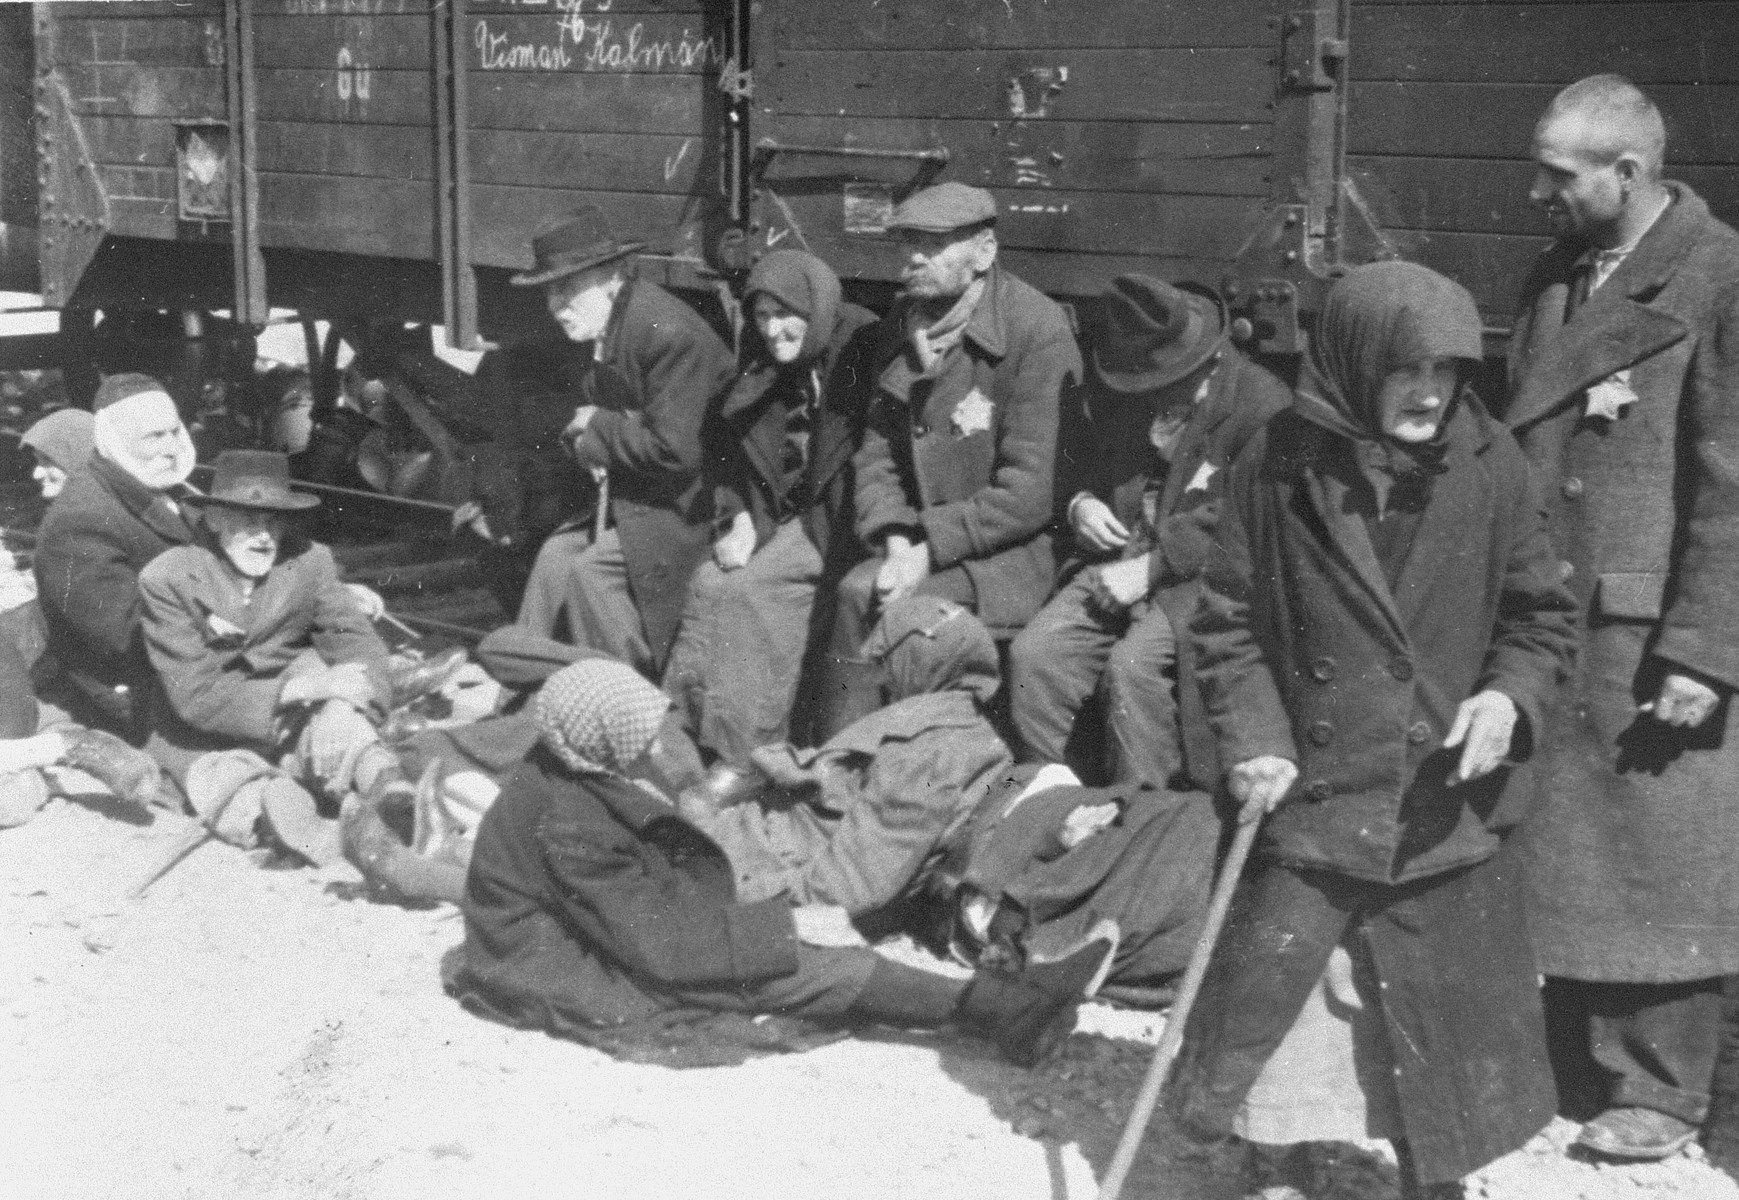 A group of elderly Jews from Subcarpathian Rus sit alongside the train on the ramp at Auschwitz-Birkenau. In time these people will be put on trucks and driven to the gas chamber.   Sitting next to the train on the left are Lili Jacob's maternal grandparents, Abraham and Sheindele Jacob.  Seated on the ground at the far left is Henryk Naftoli Herz Adler.  He is wearing a handkerchief to cover his face because his beard was forcibly cut off.  Seated in front of him is Samuel (Sandor) Ben Yehuda Kohn.